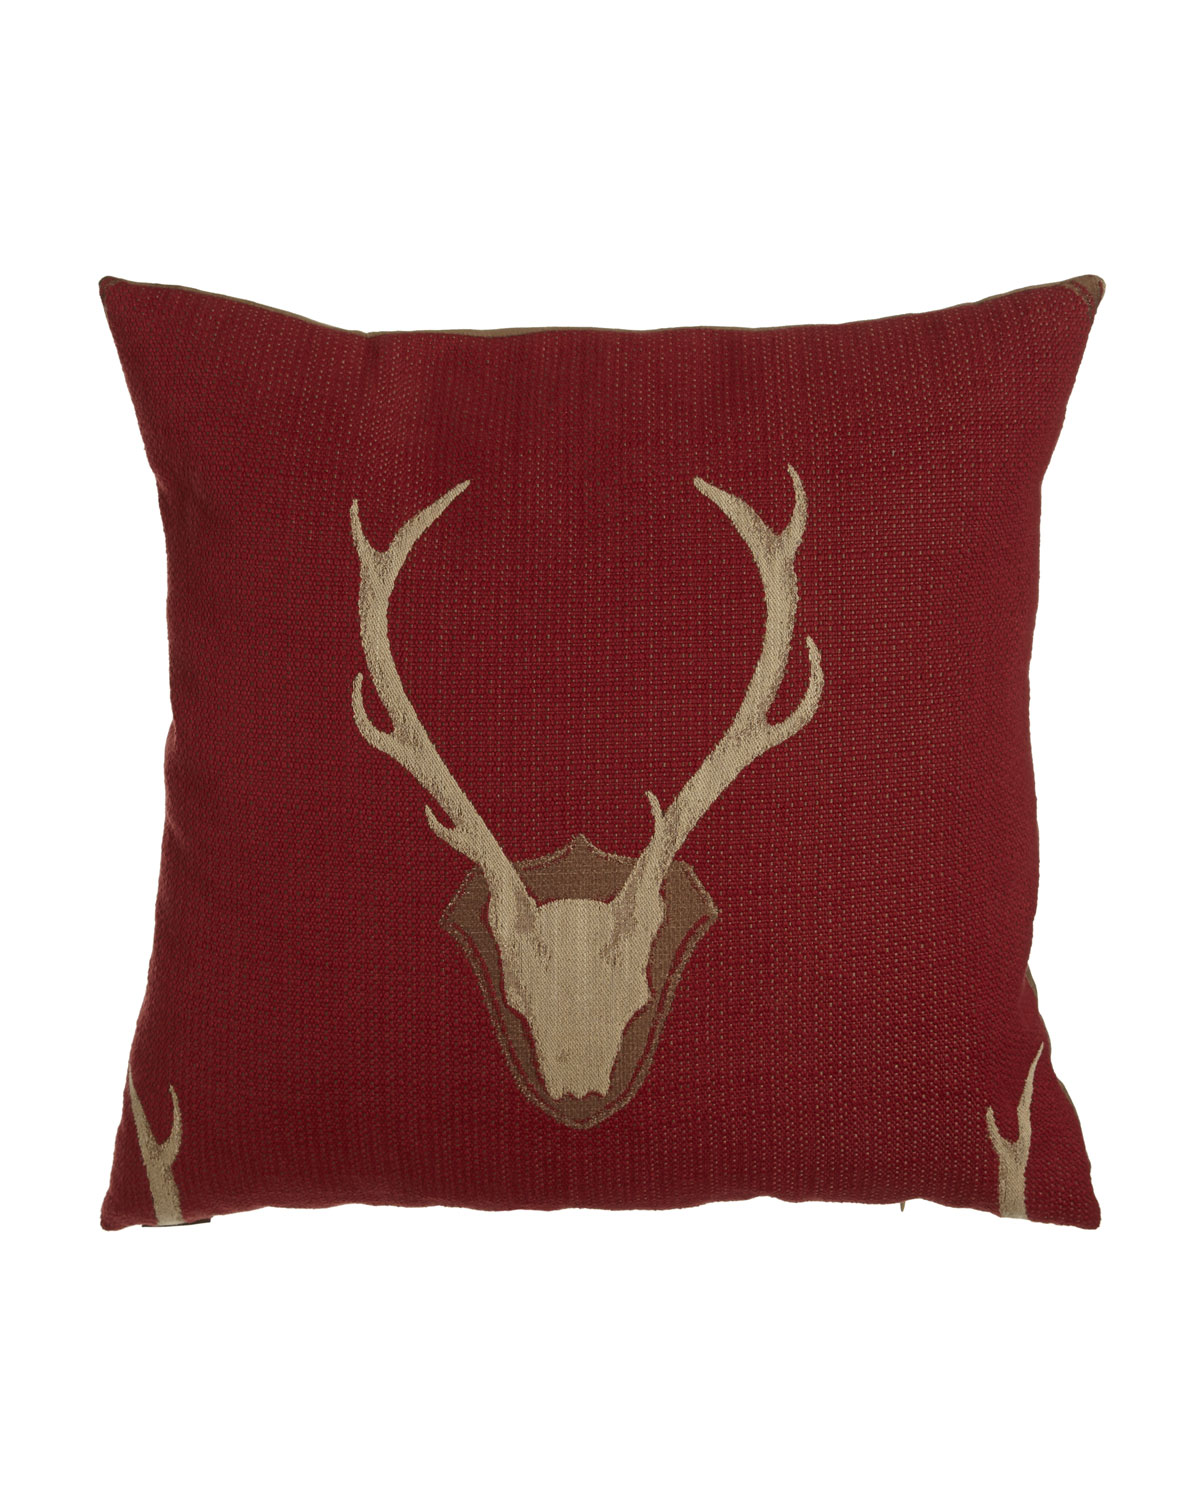 D.V. Kap Home Loren Deer Pillow